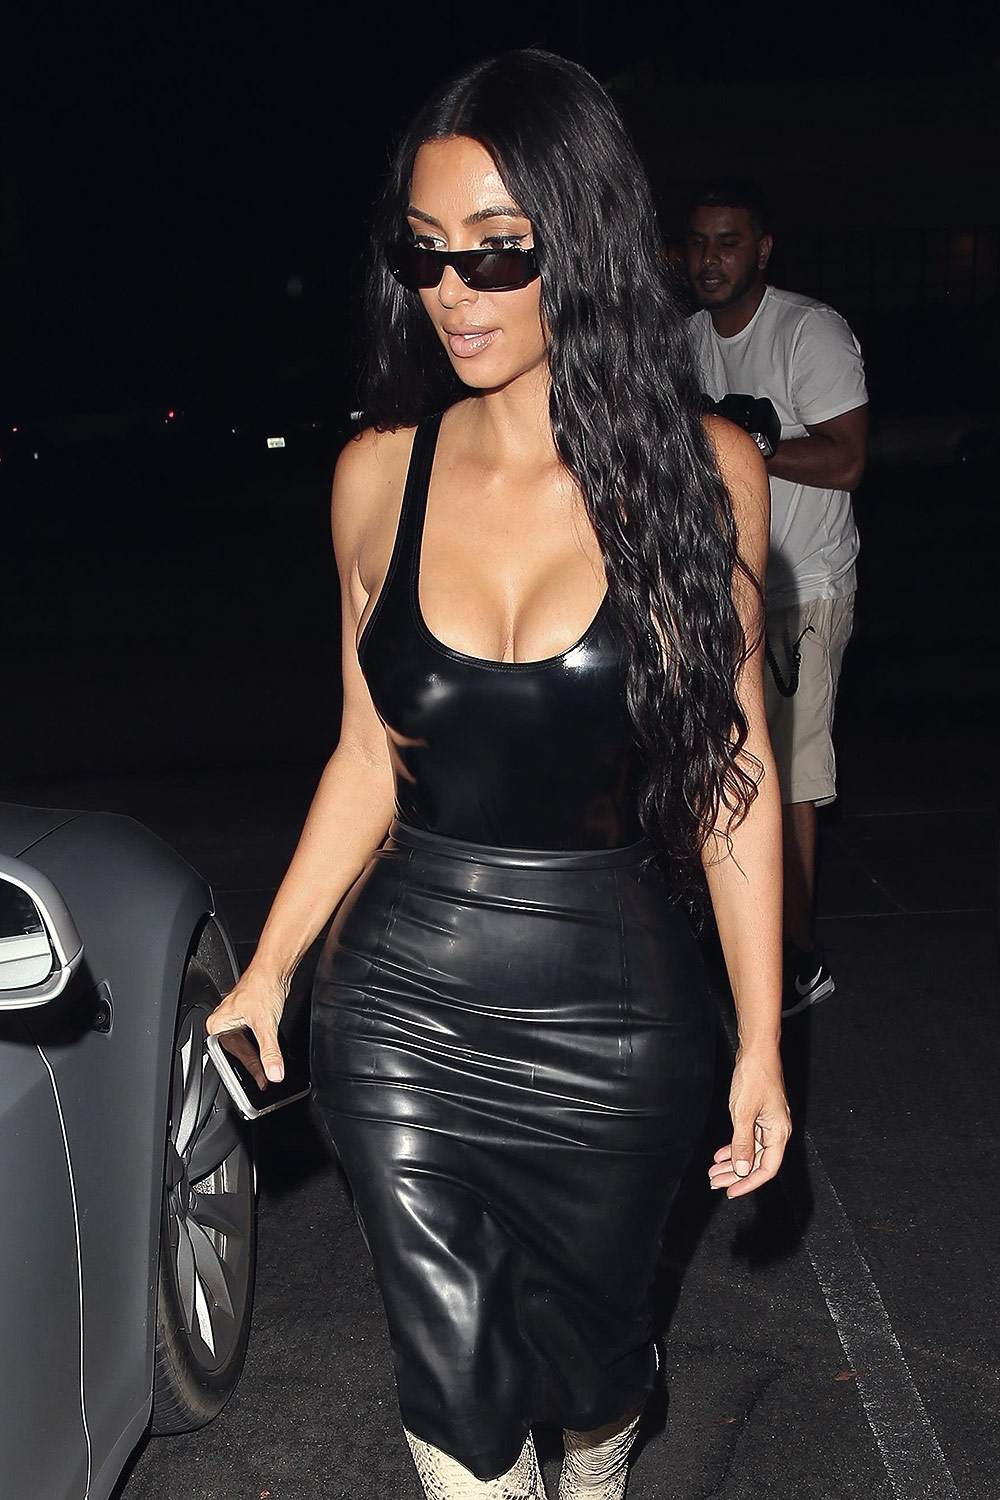 Kim Kardashian seen at Matsuhisa Restaurant